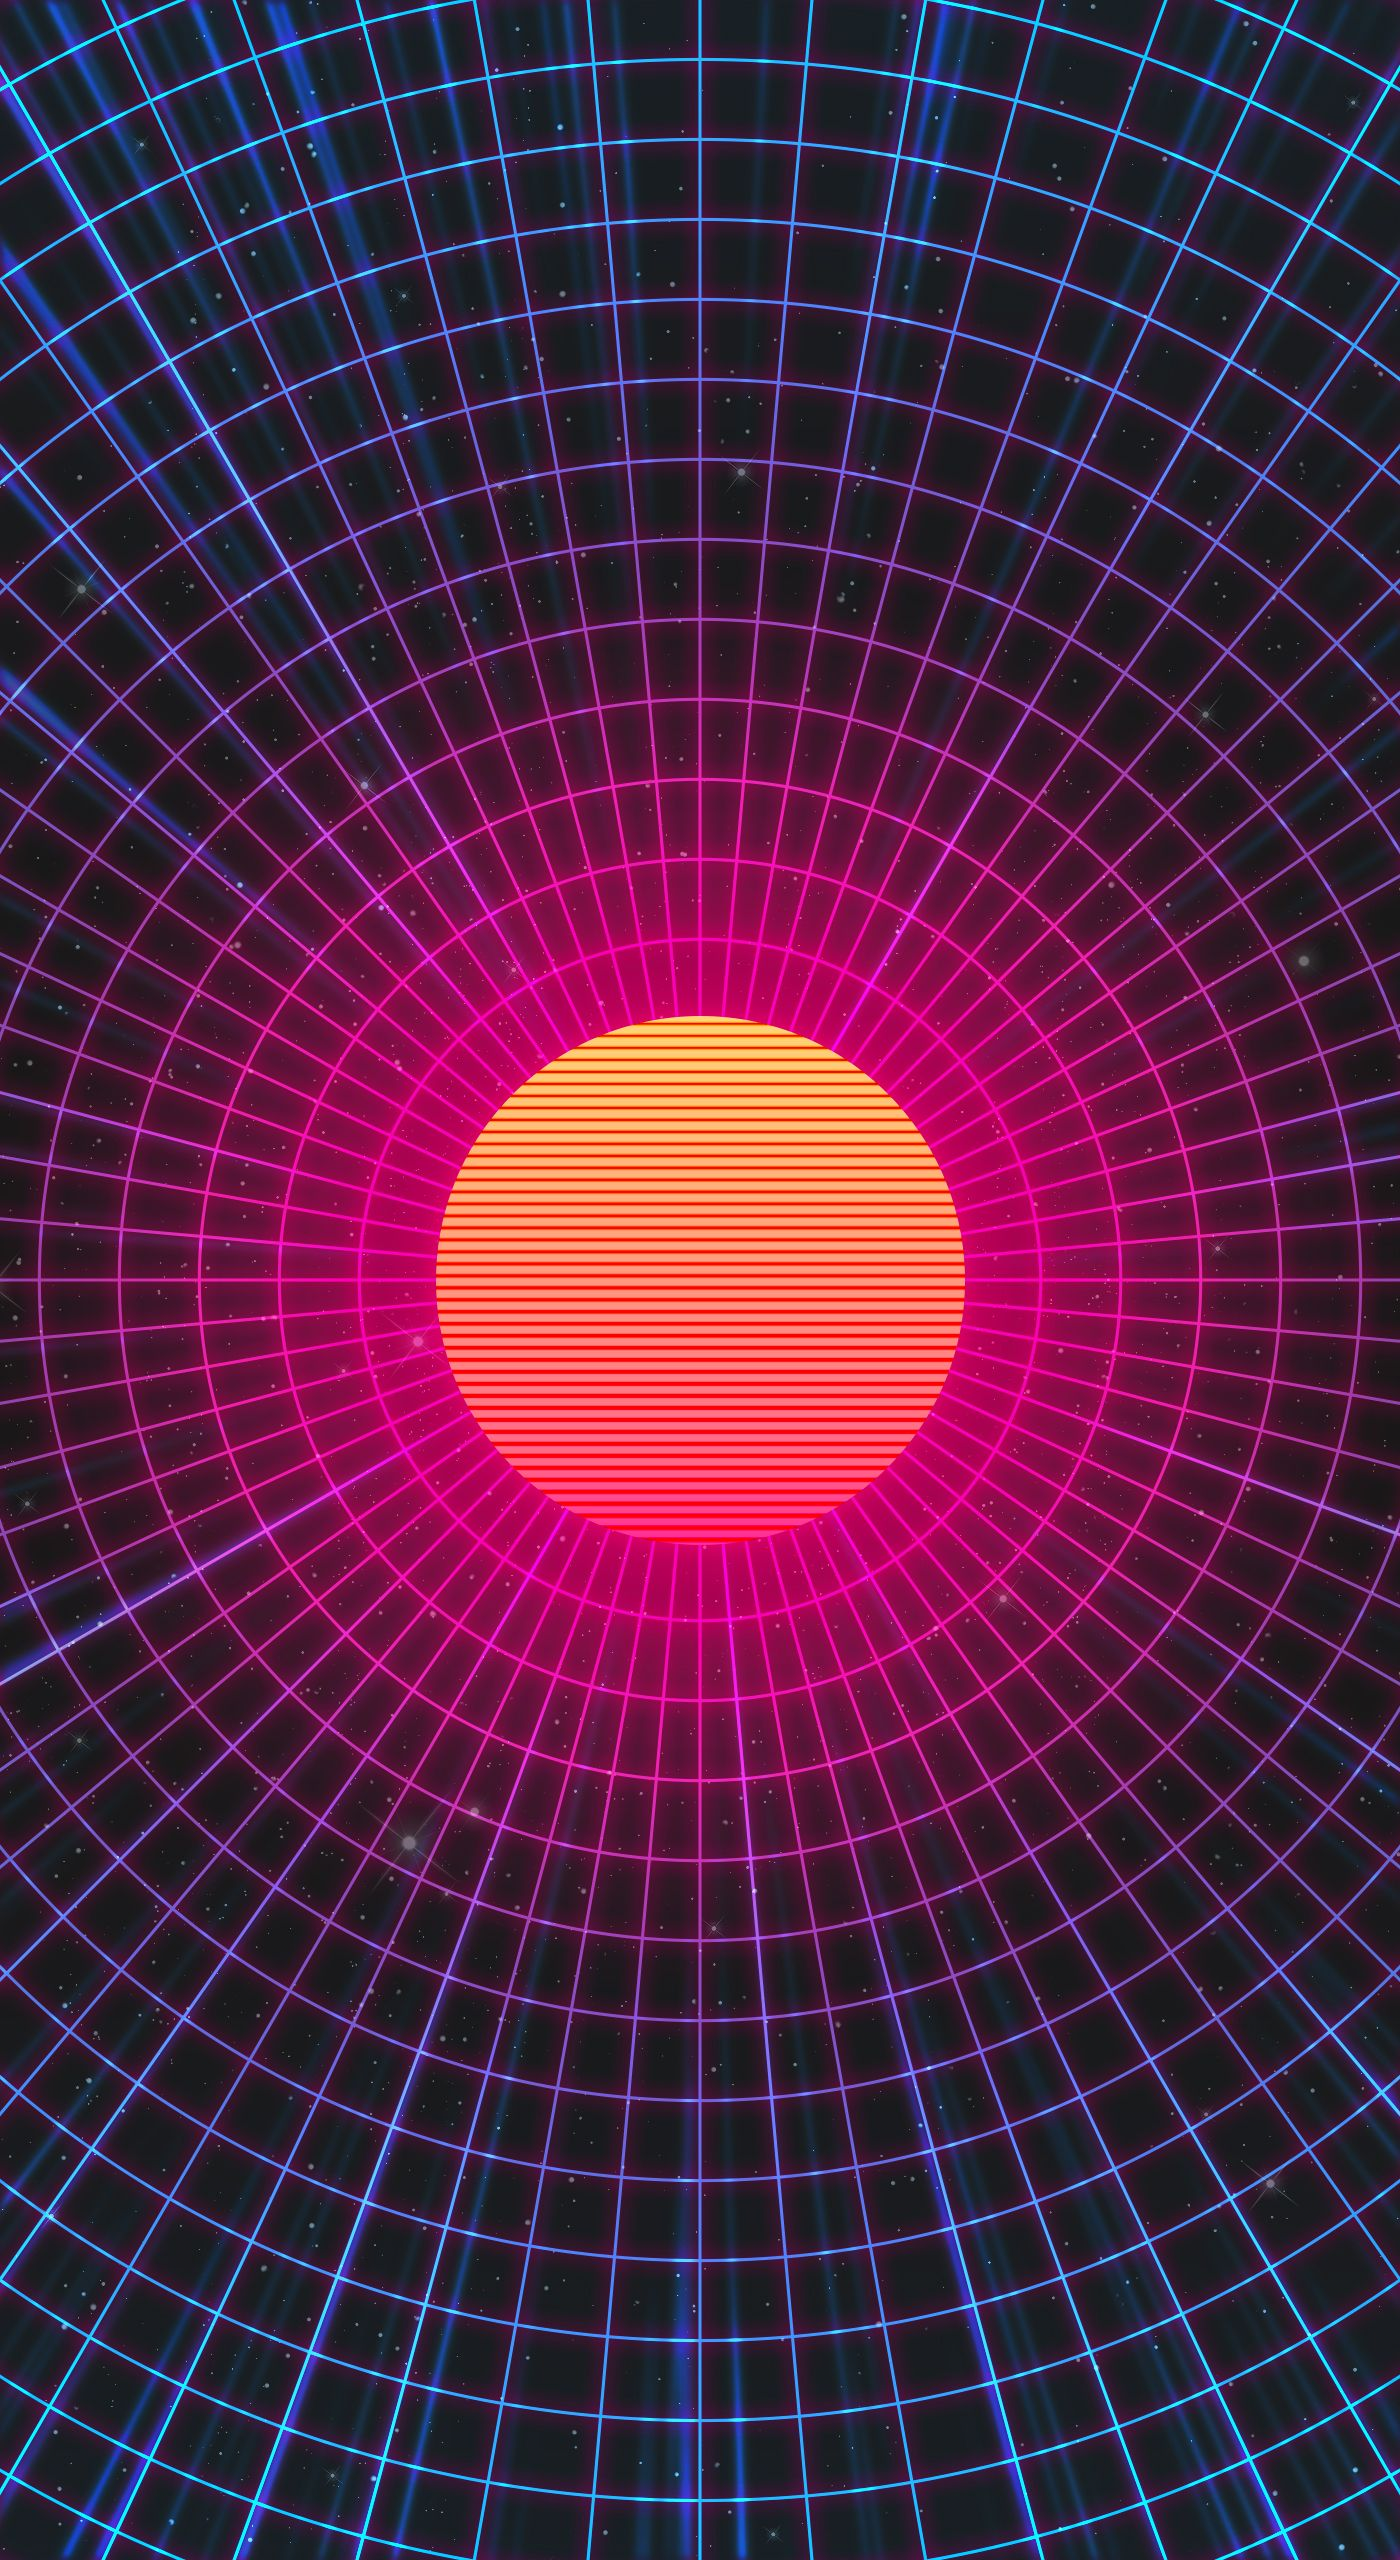 Android Wallpaper For Mobile Synthwave Mobile Wallpaper Google Search Synthwave Retrowave